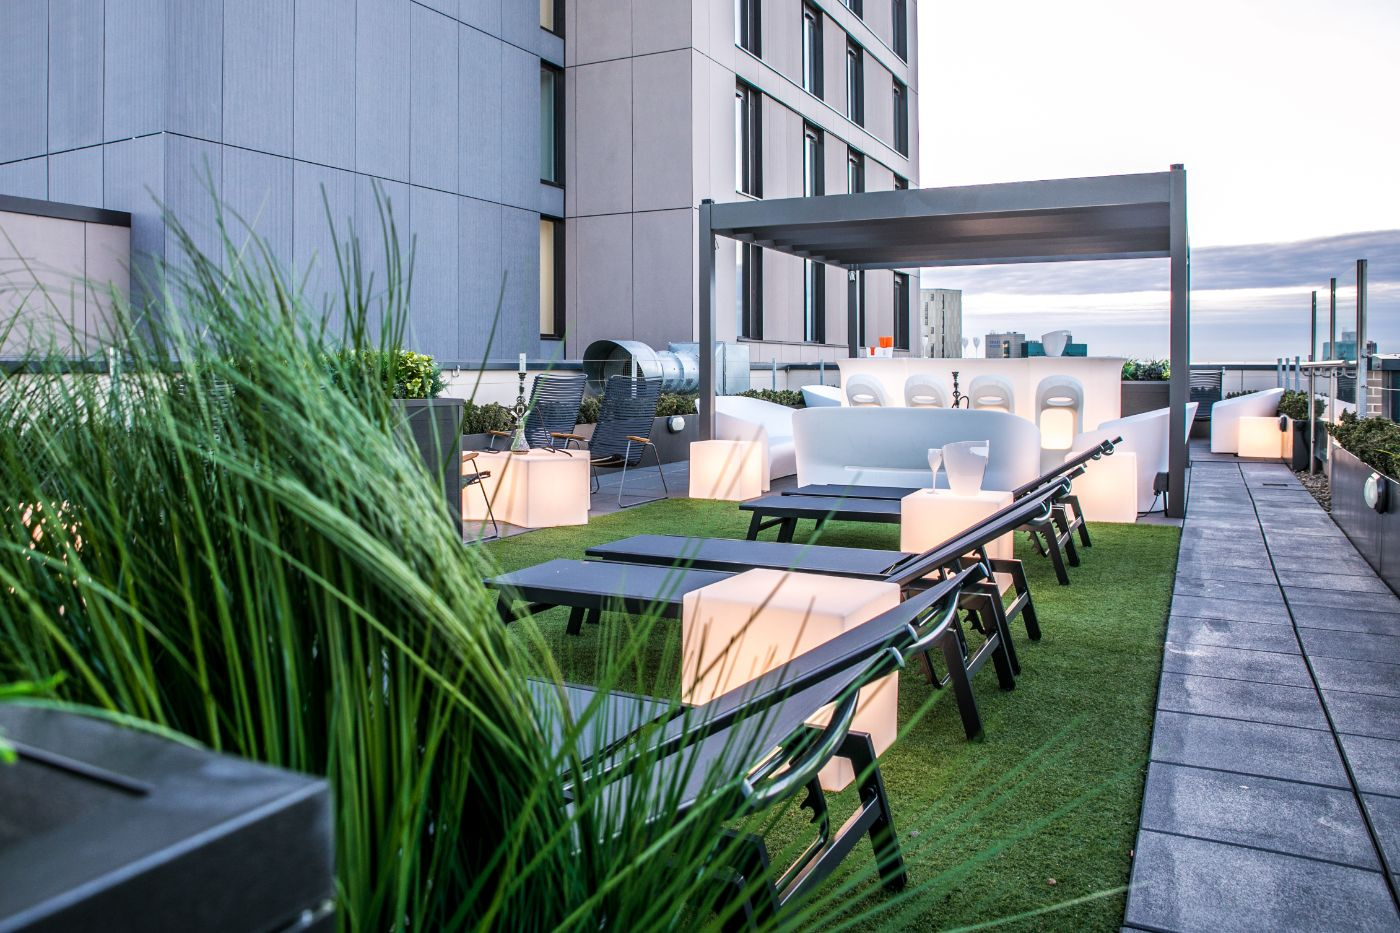 33 Parkside student accommodation roof terrace